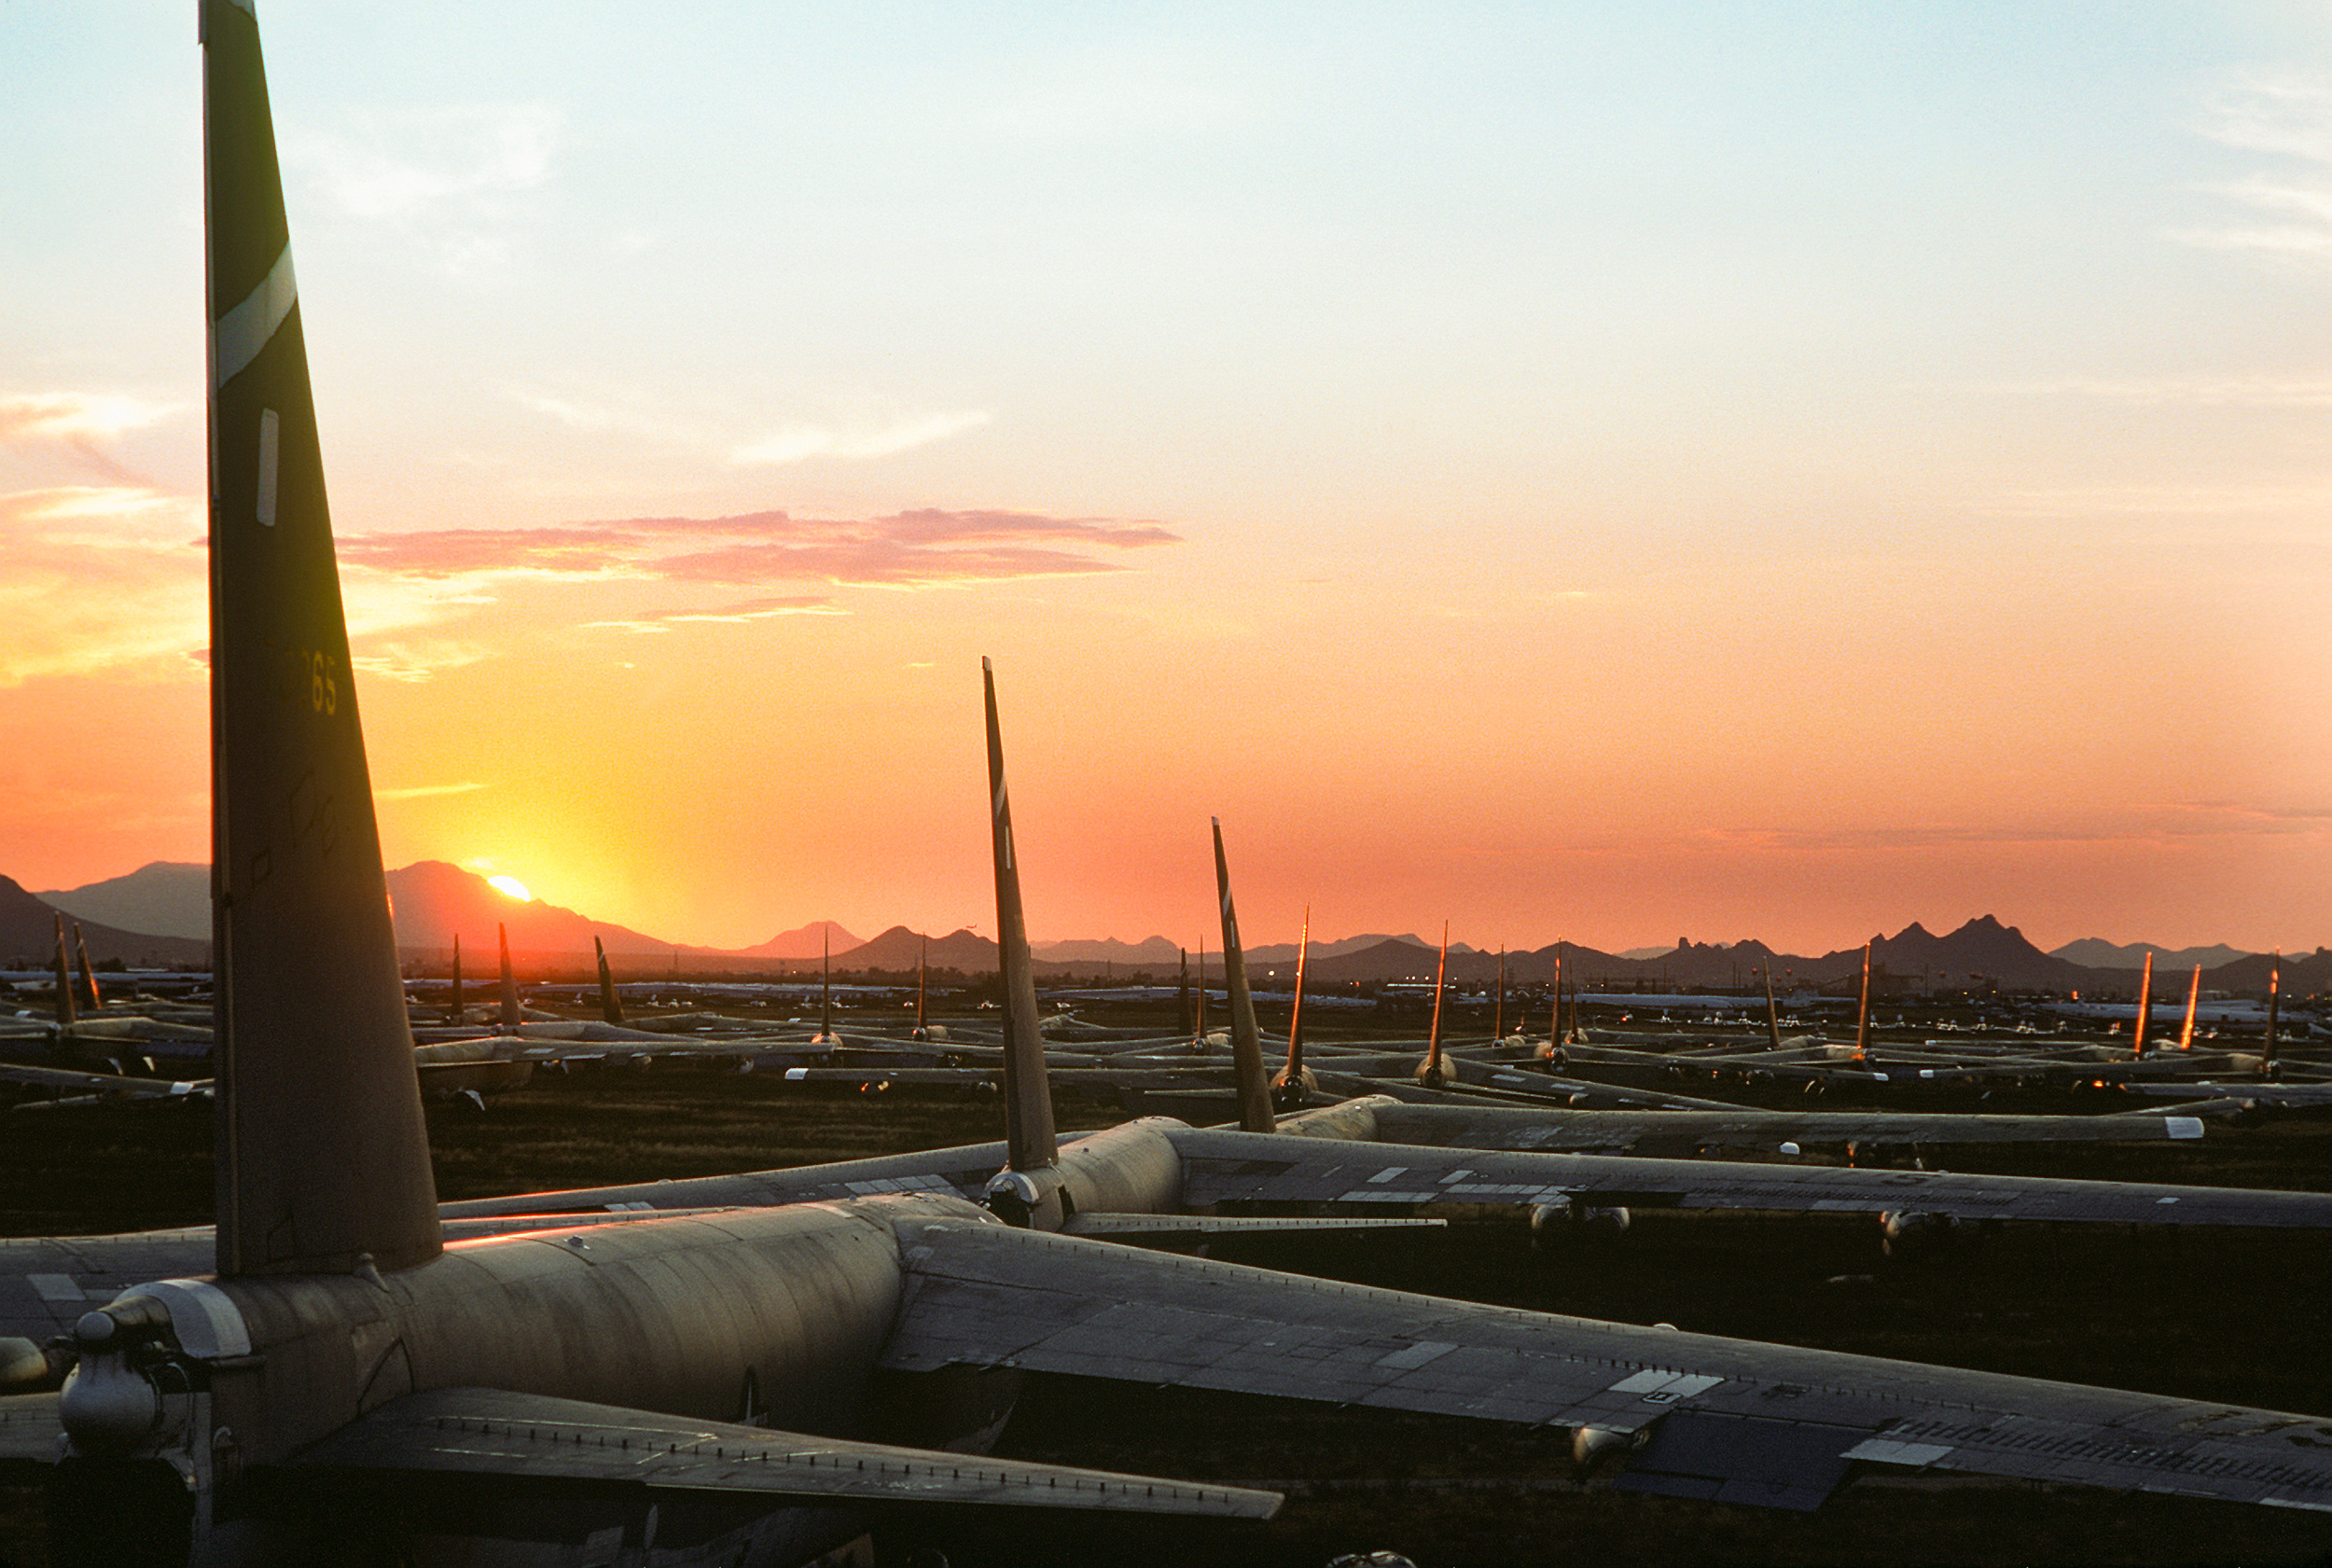 Dozens_of_B-52_Stratofortress_aircraft_are_bathed_in_the_glow_of_the_setting_sun_as_they_sit_on_the_desert_floor_at_the_Aerospace_Maintenance_and_Regeneration_Center_DF-ST-89-10582.jpg